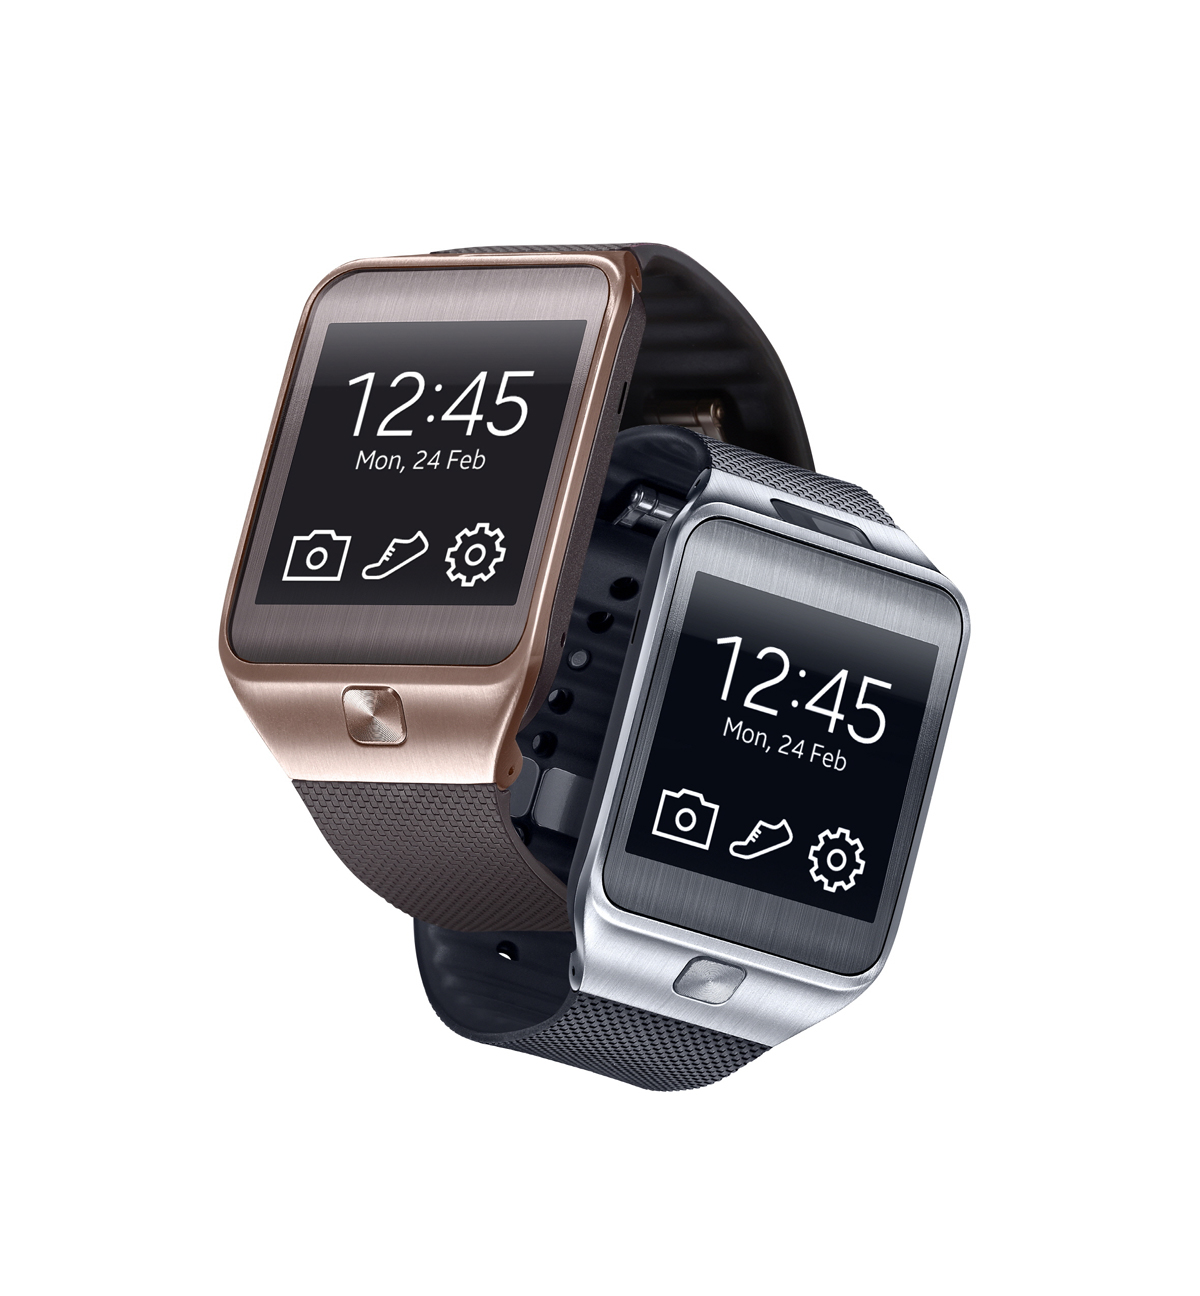 samsung gear 2 samsung d voile ses nouvelles montres connect es. Black Bedroom Furniture Sets. Home Design Ideas